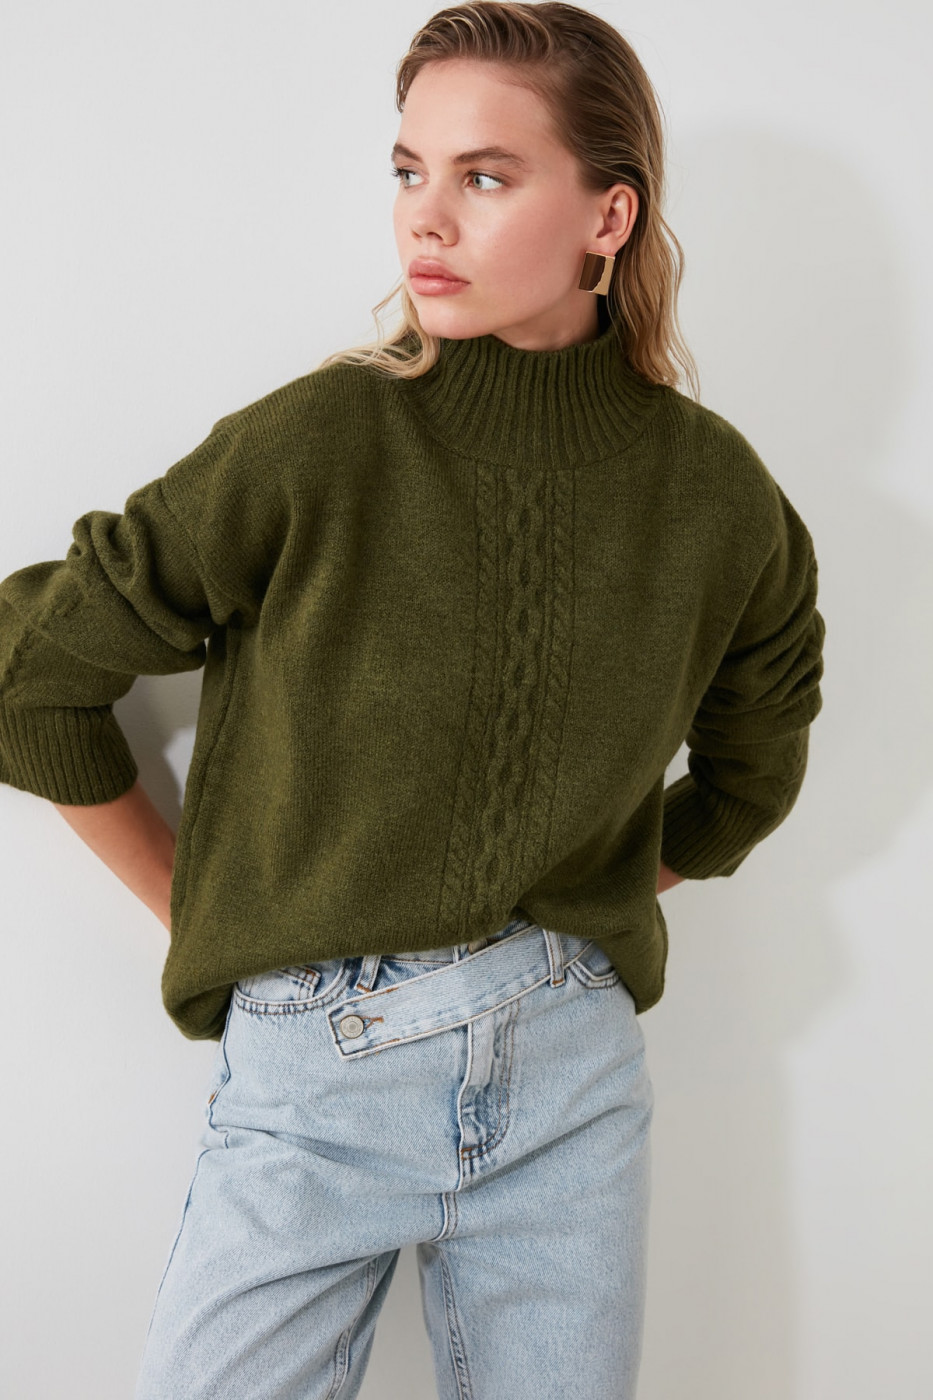 Trendyol Khaki Knitting Detailed Turtleneck KnitSweater